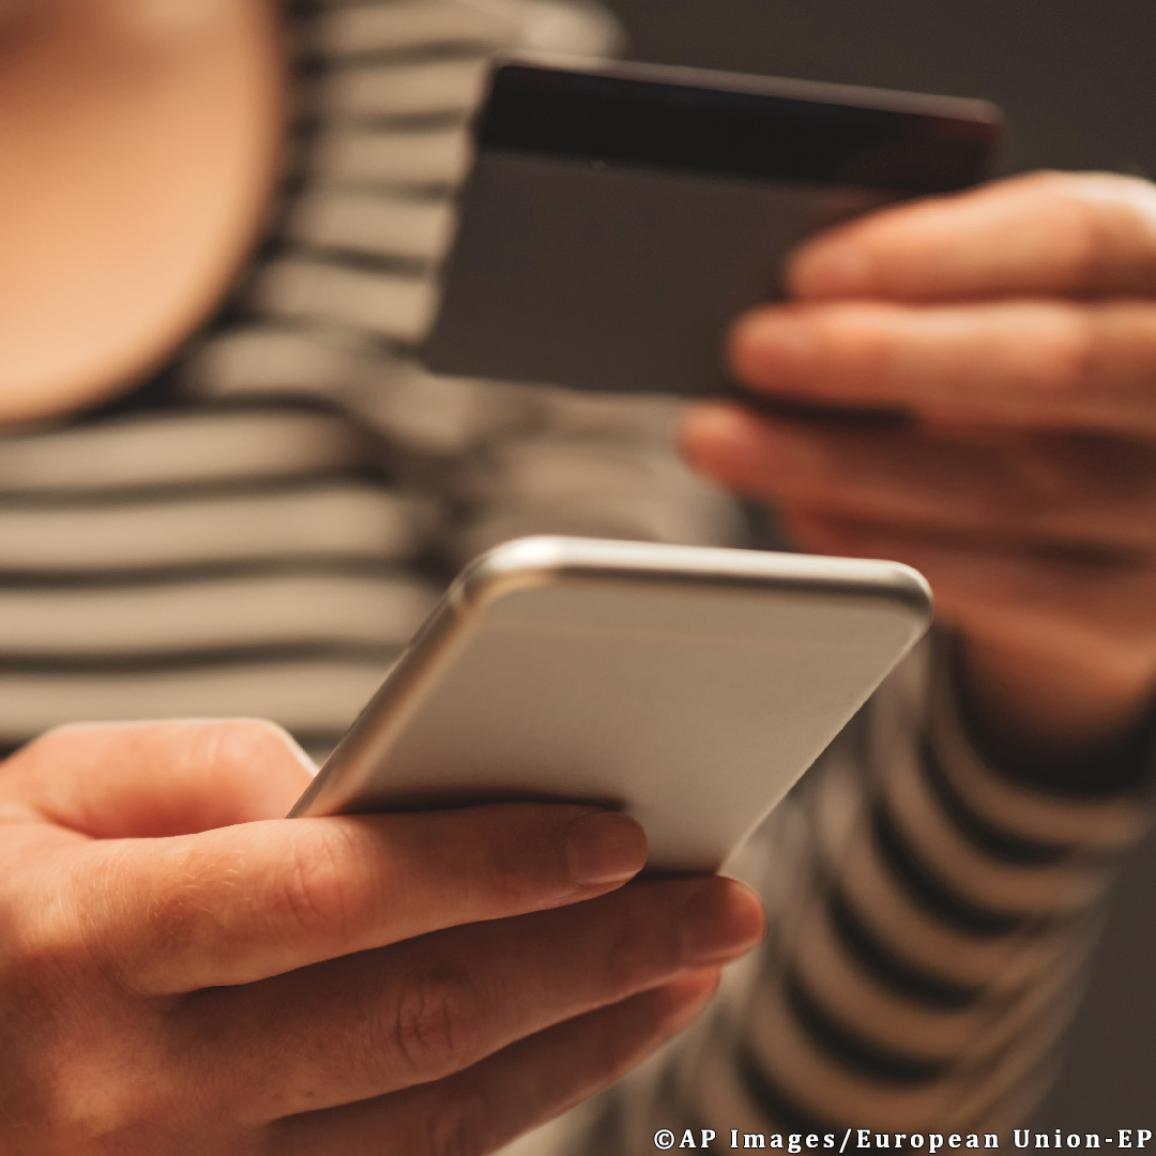 Debit card payment on mobile phone ©AP Images/European Union-EP